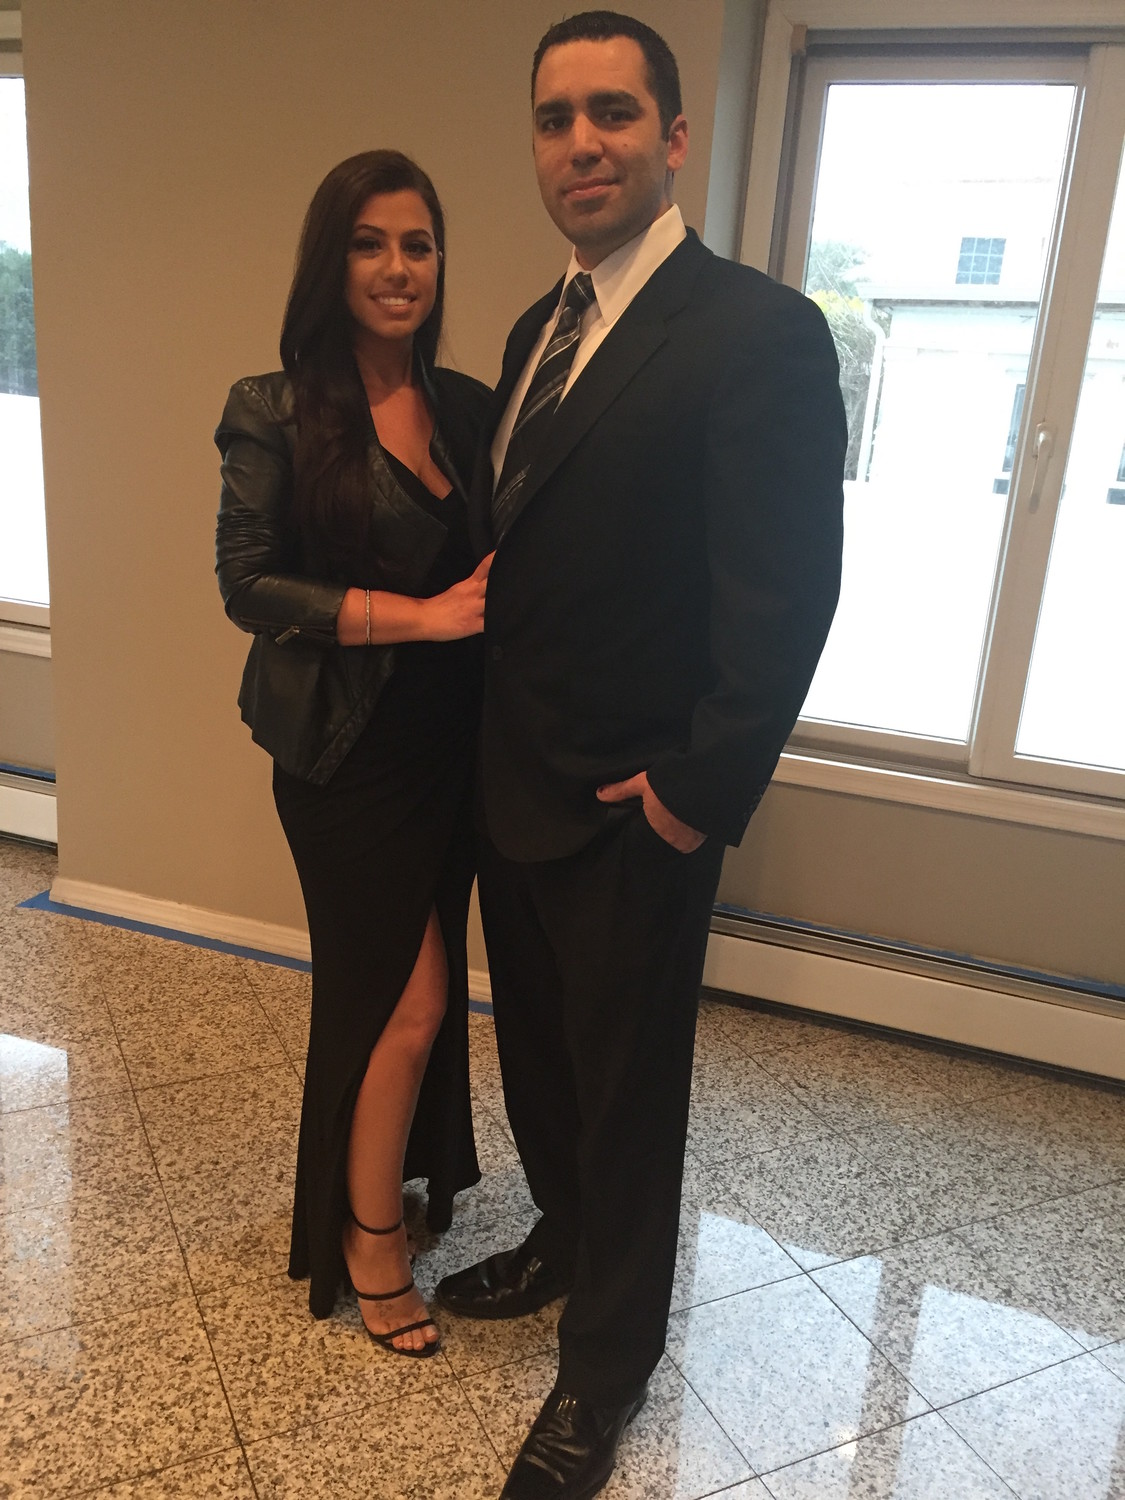 Nicole Pulizzi and Frankie Perrotta, formerly of Woodmere, 